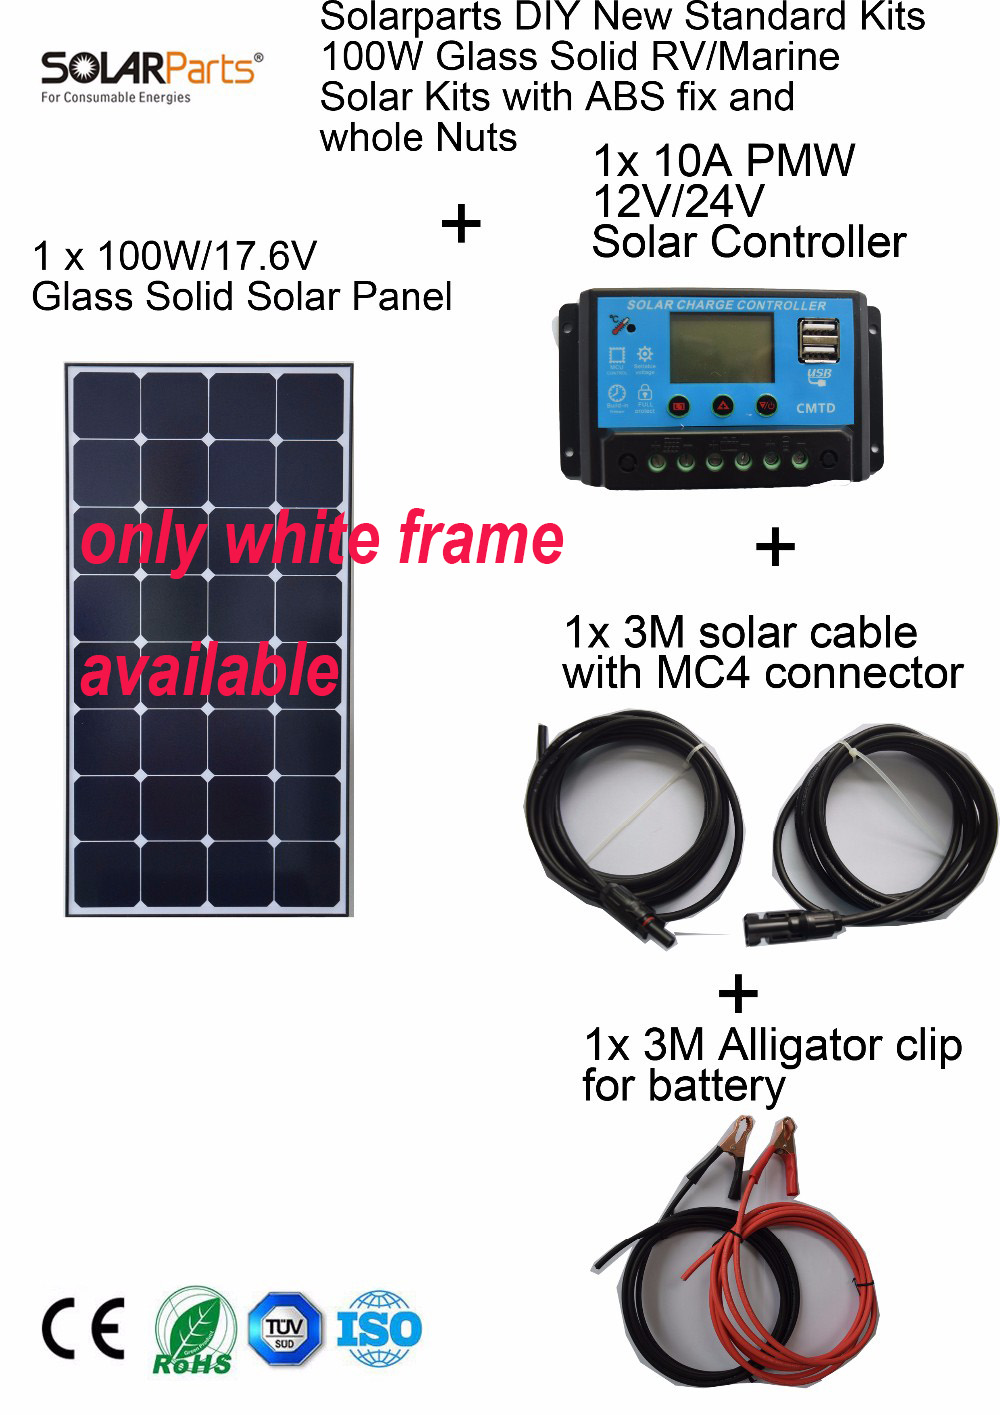 Solarparts 1x100W Monocrystalline Solar Module high efficiency back contact solar panel cell system DIY kits RV marine home camp solarparts 400pcs flexible solar cell 125 125mm back contact mono solar module 12v diy solar panel system kits rv marine camper